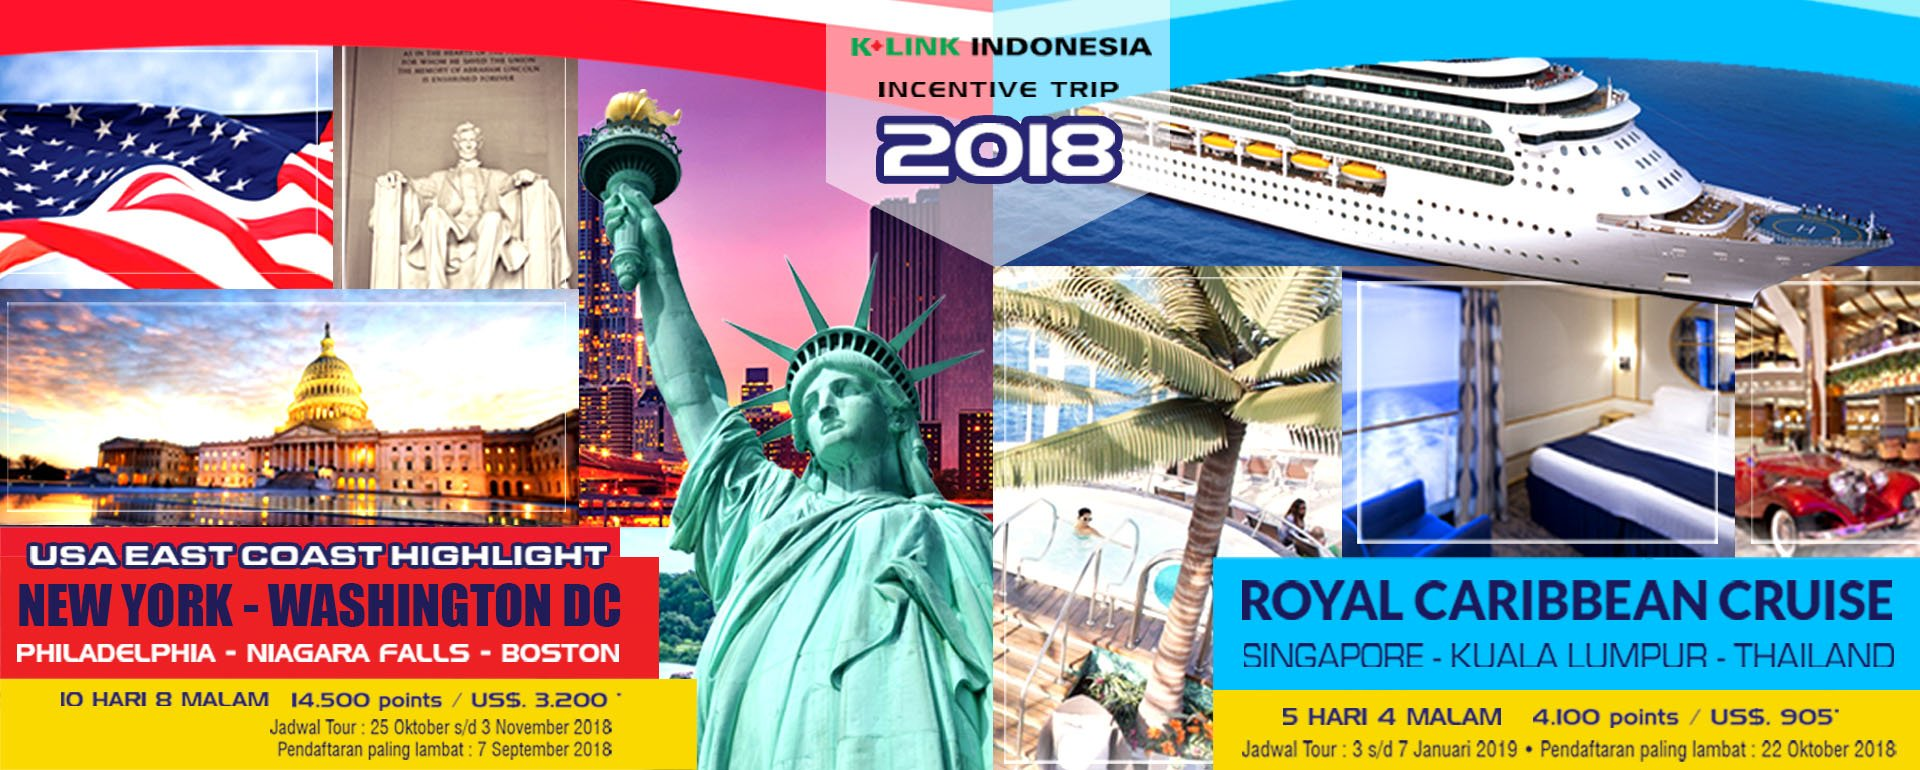 INCENTIVE TRIP ROYAL CARRIBEAN CRUISE & USA